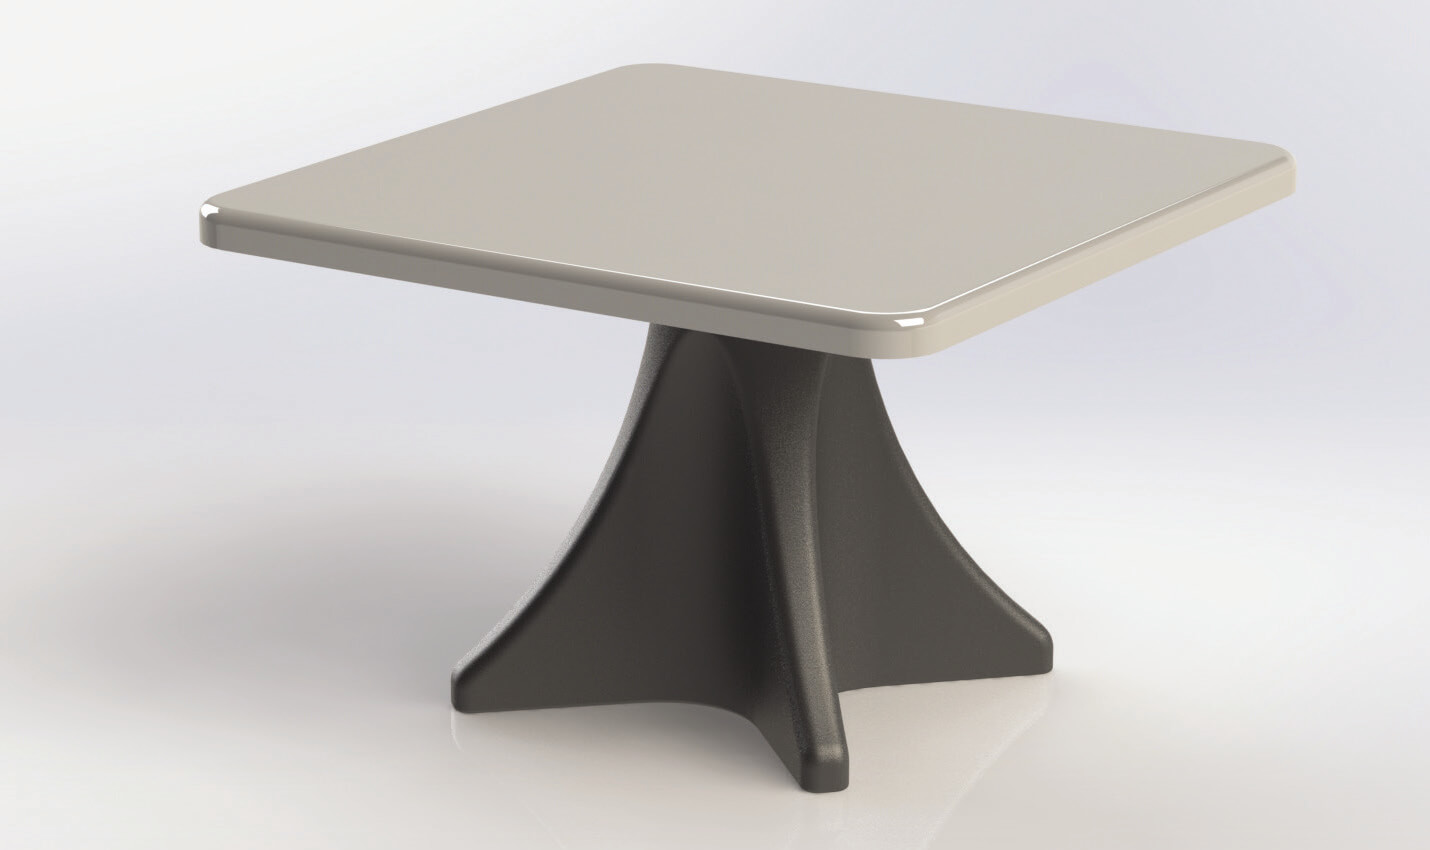 MAX-SECURE® ESTILO DINING TABLE ES 4000-1 (ES 4000-1T AND ES 4000-1B)